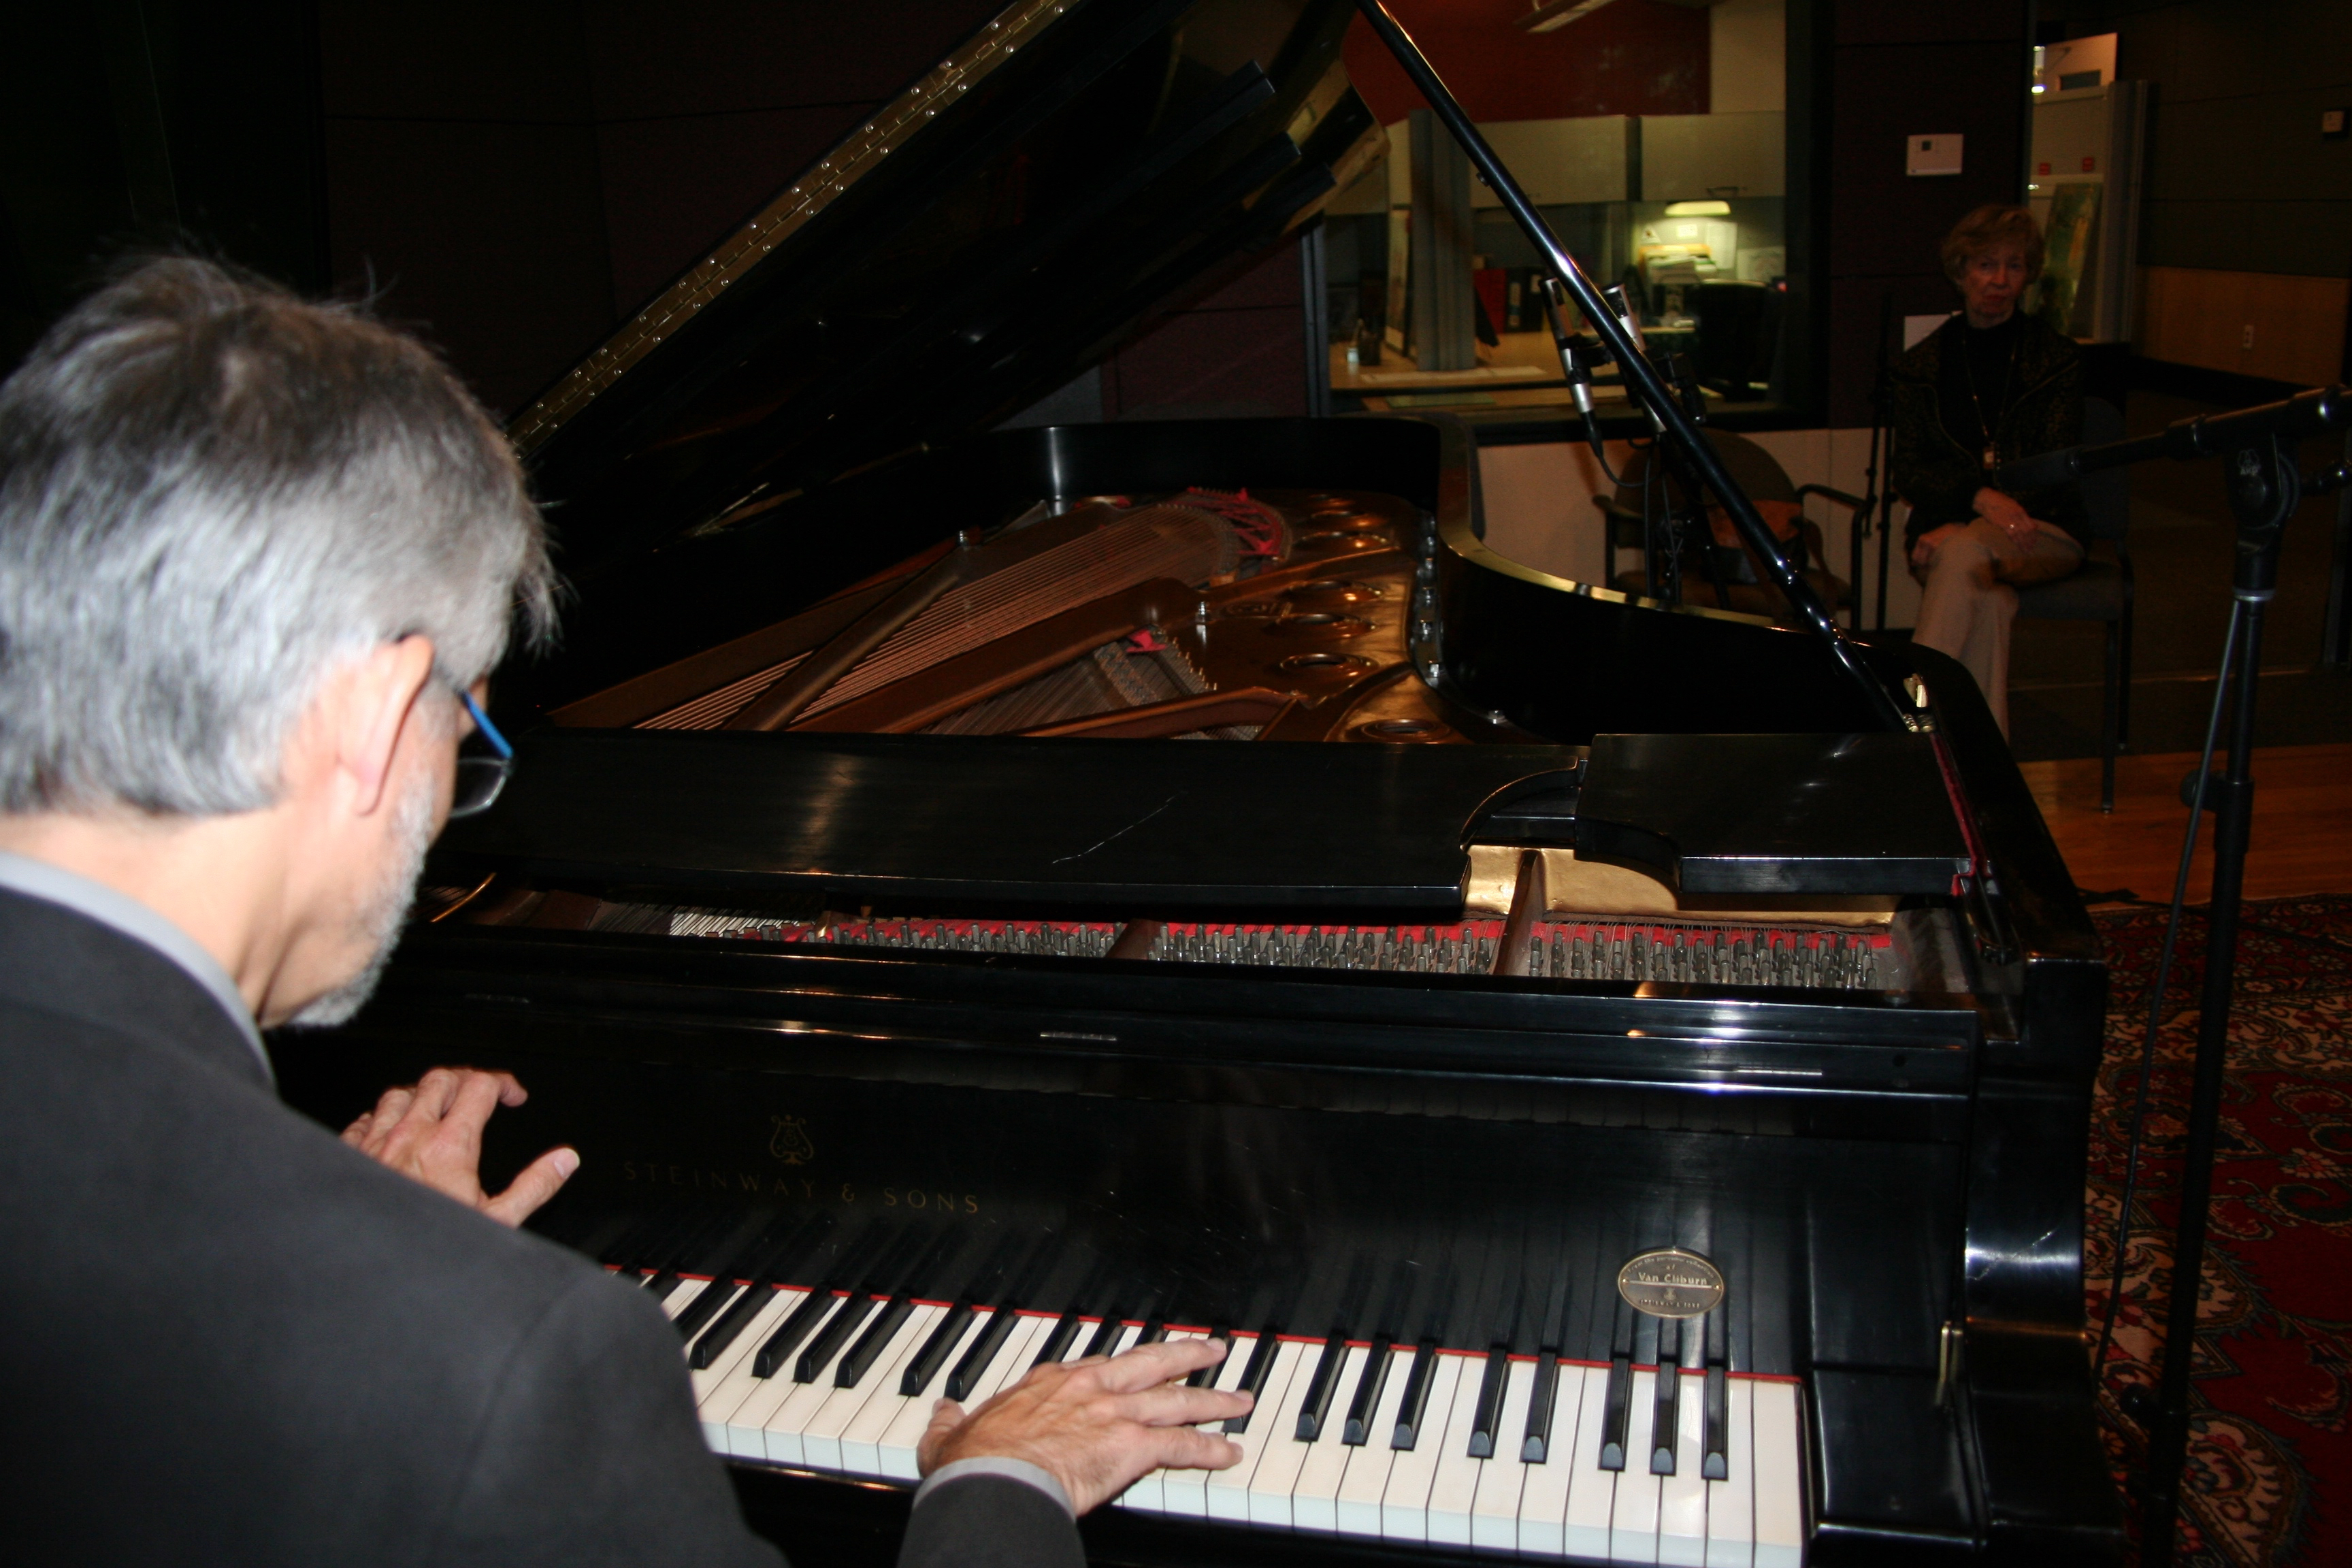 Recording on Van Cliburn's Piano